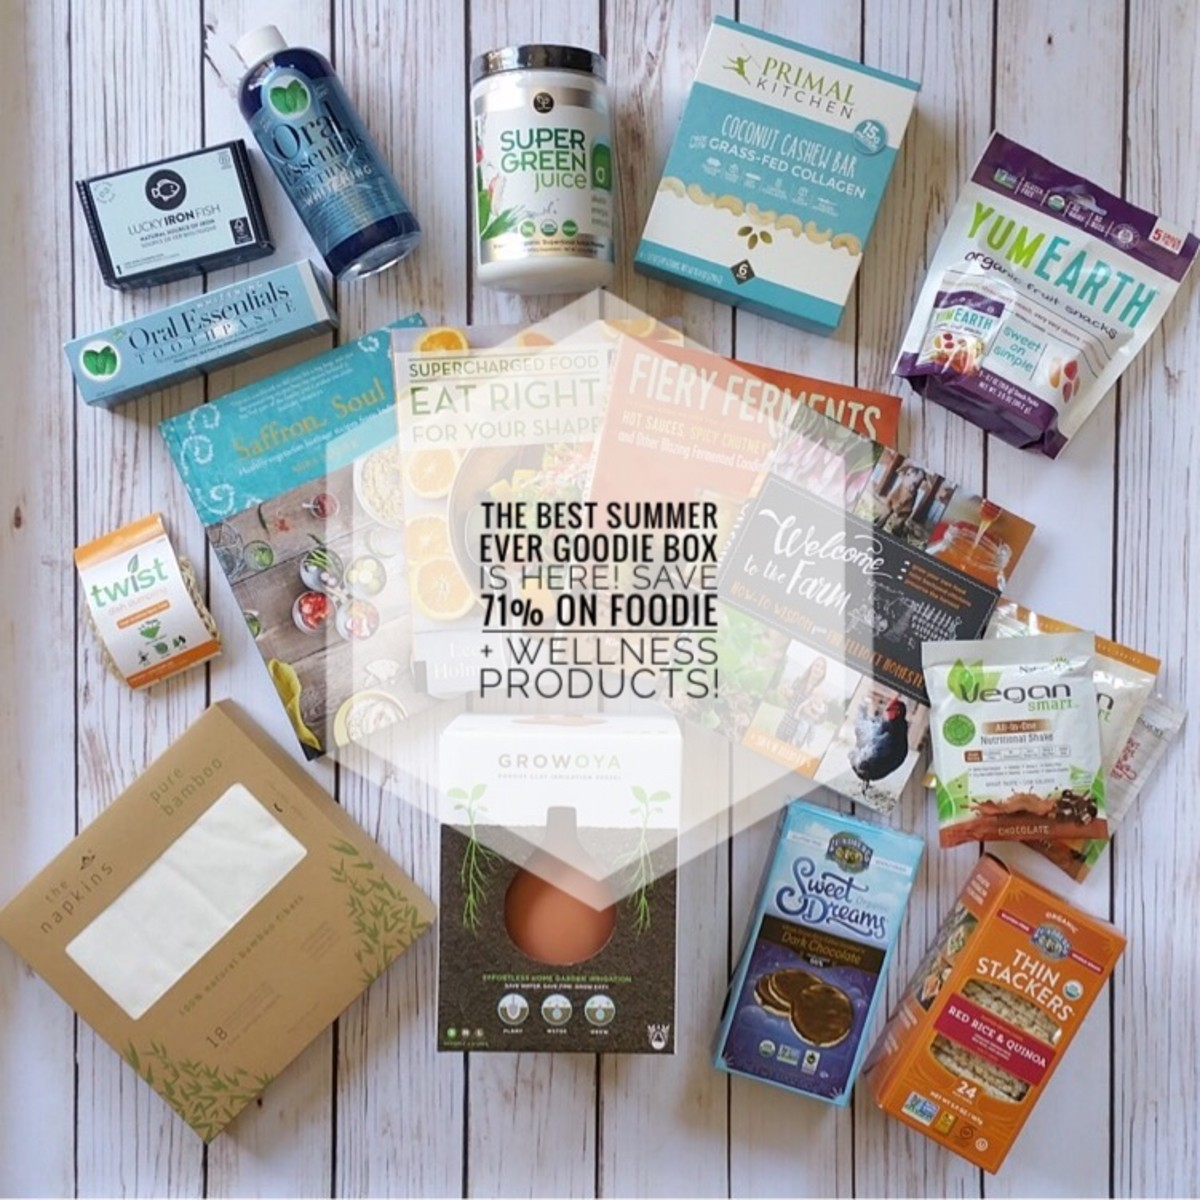 Organic Authority Summer Goodie Box